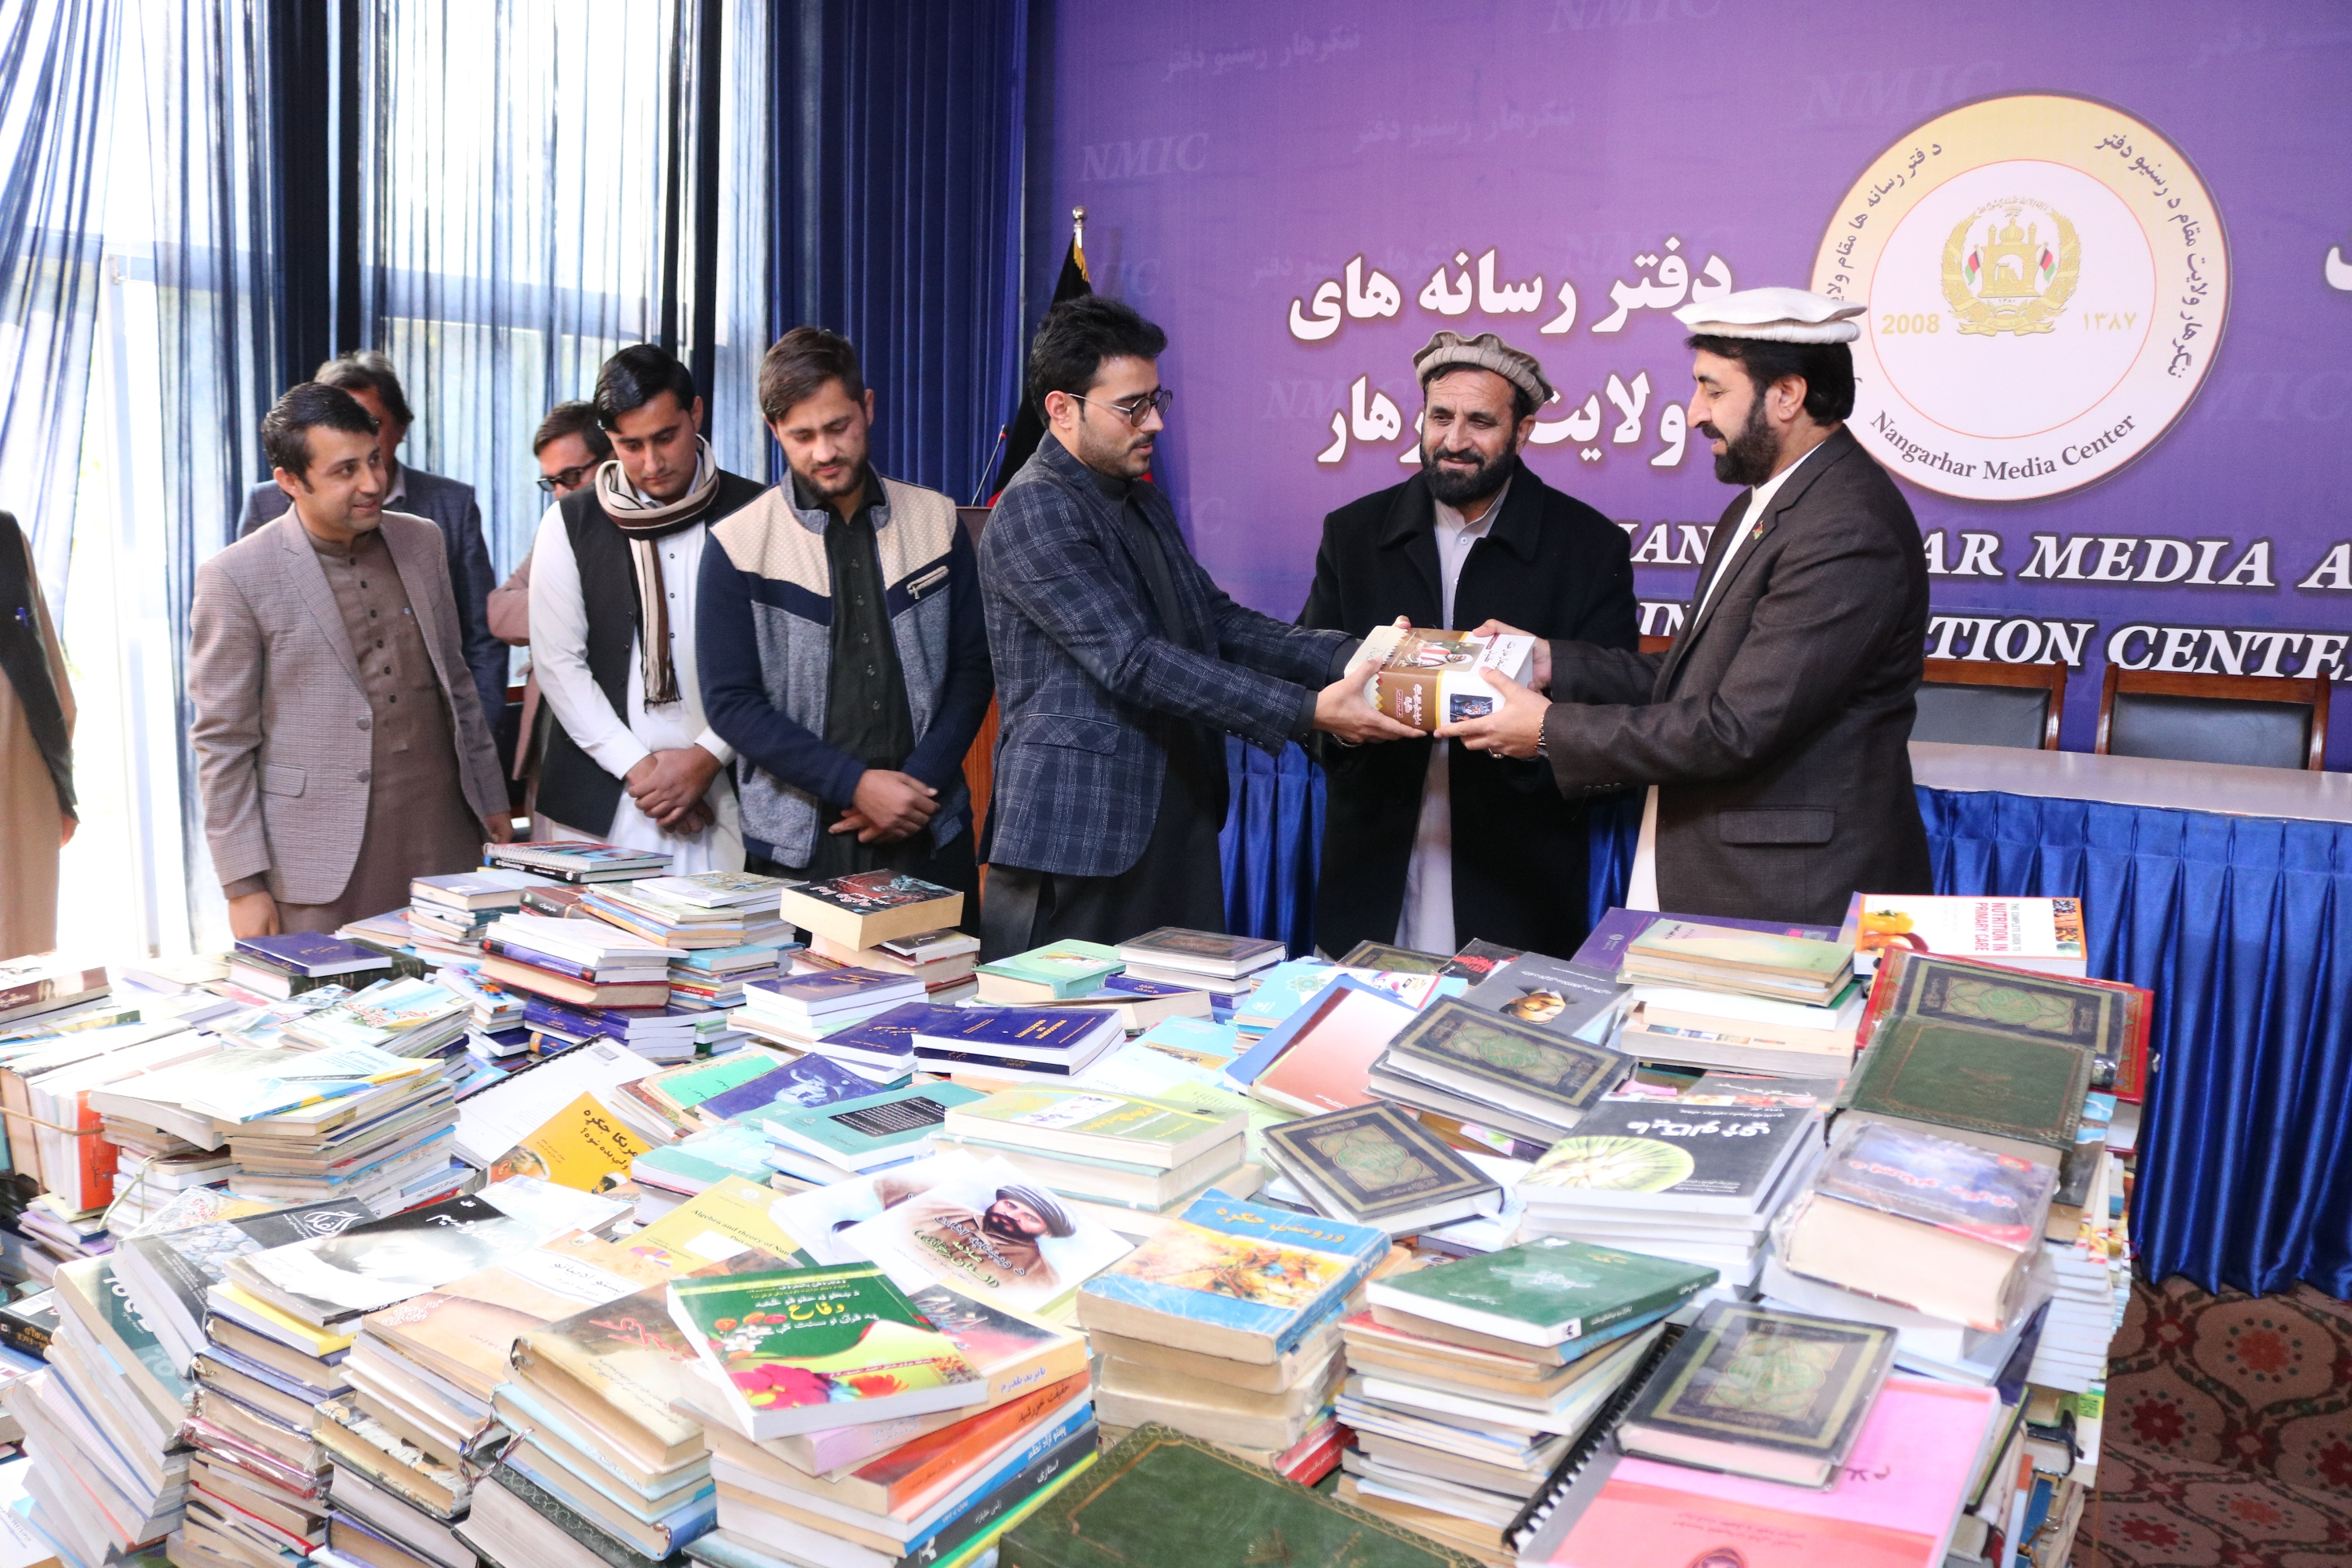 Volunteers collect more than 8,000 books for Jalalabad public library